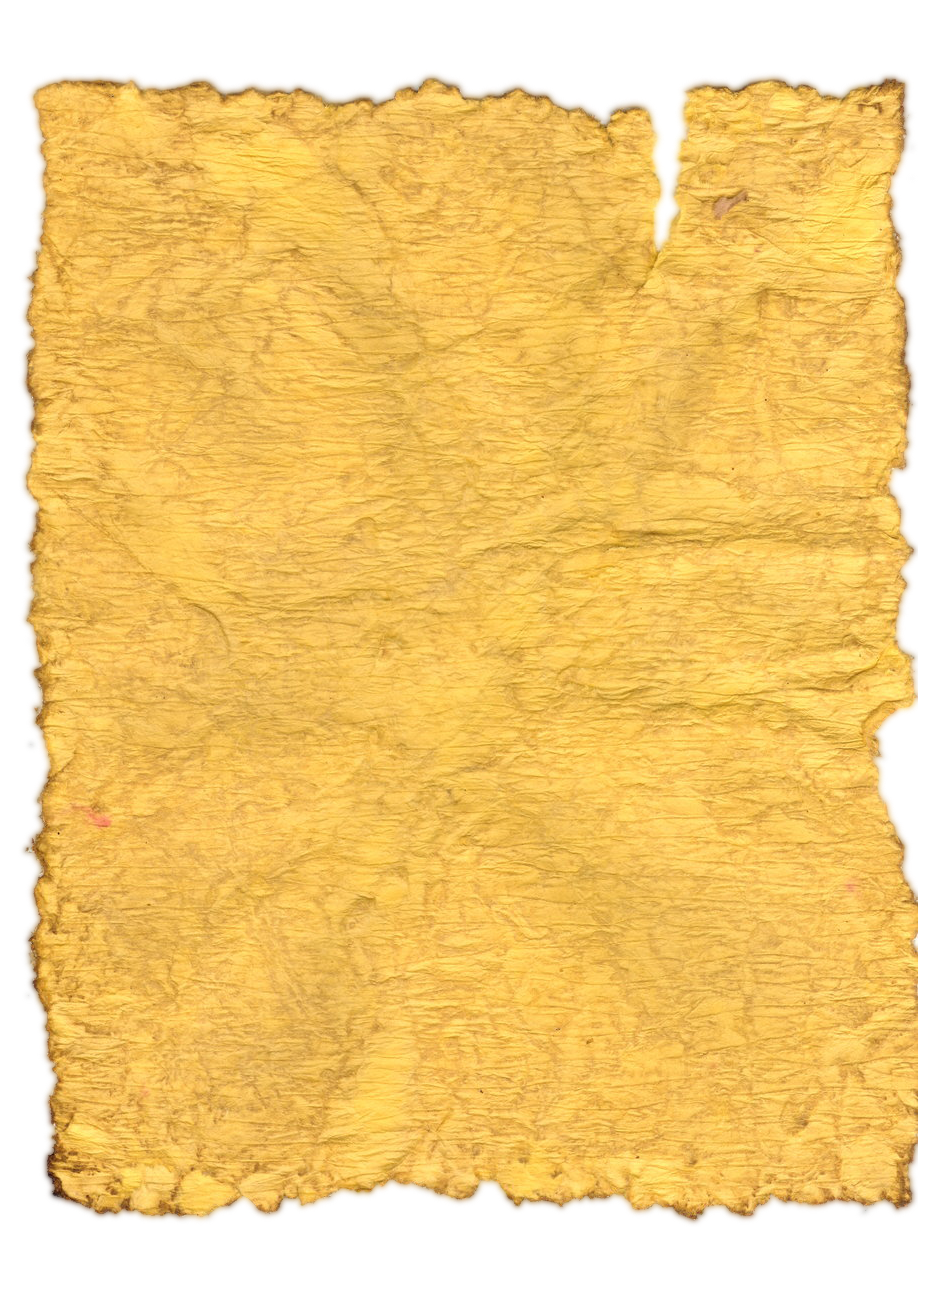 Yellow Crumpled Paper Pictures image #48291